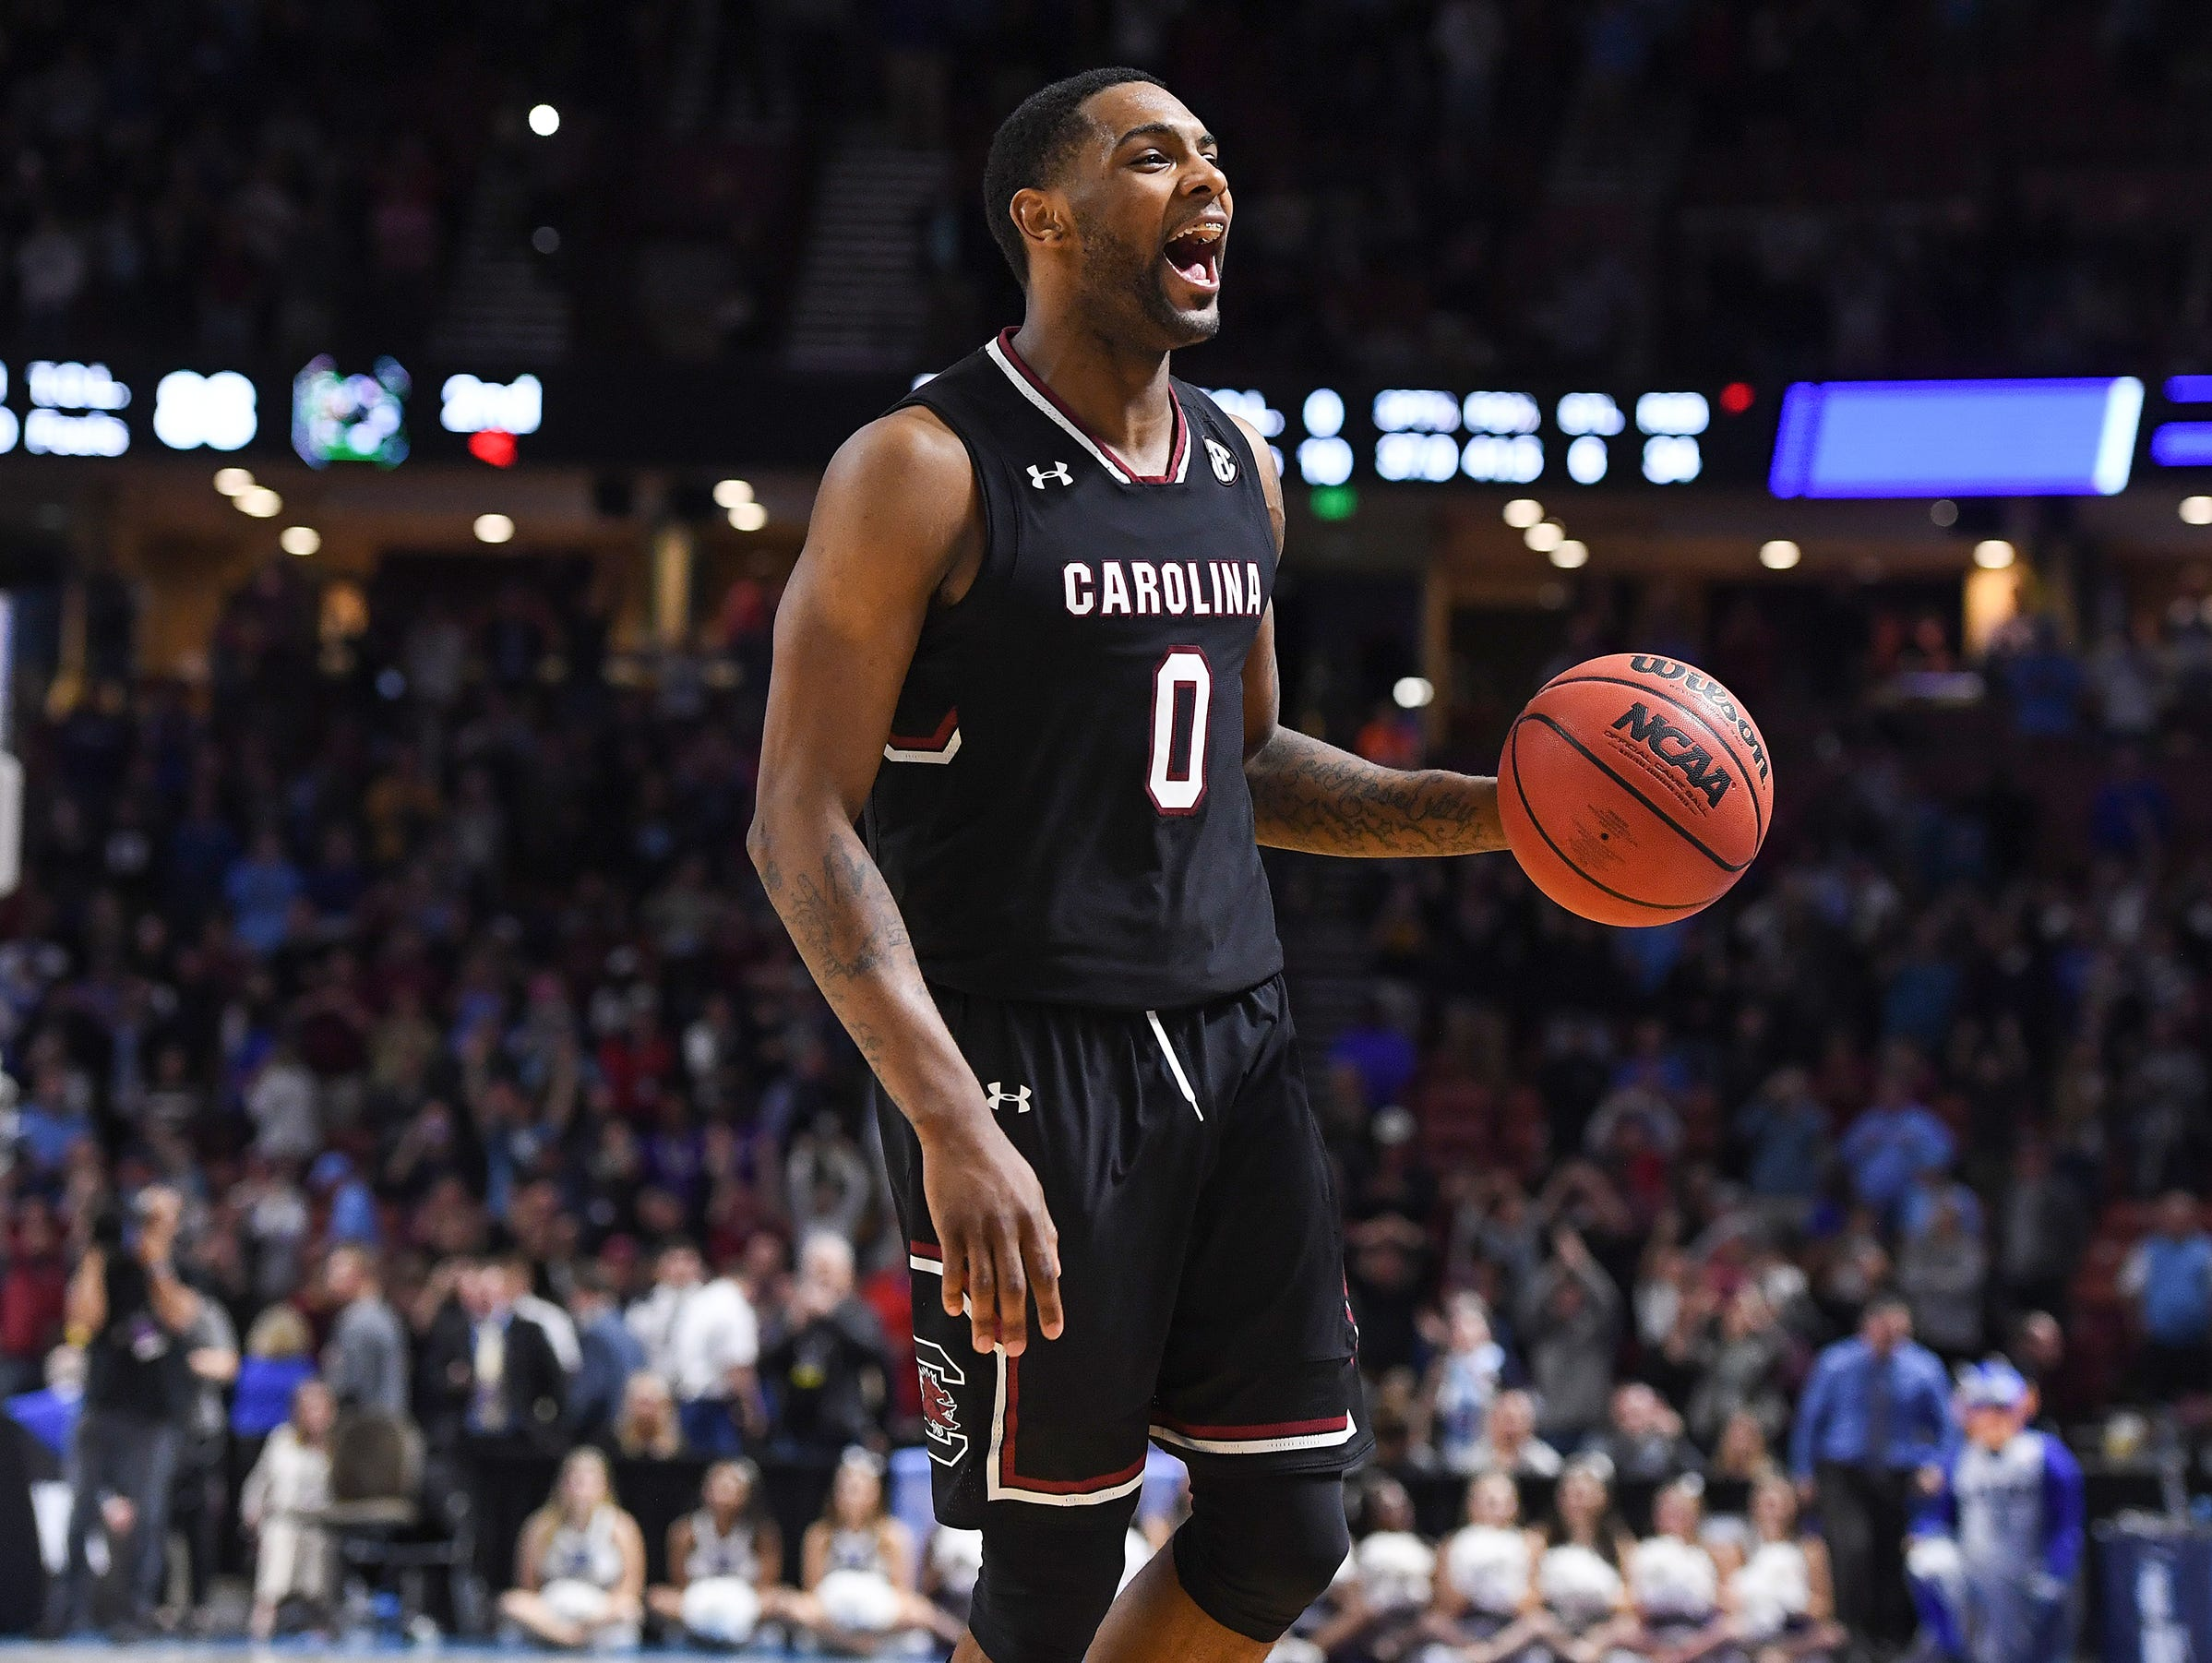 South Carolina guard Sindarius Thornwell (0) reacts after the Gamecocks defeated Duke 88-81 in the 2nd round of the NCAA Tournament at Bon Secours Wellness Arena in downtown Greenville on Sunday, March 19, 2017.